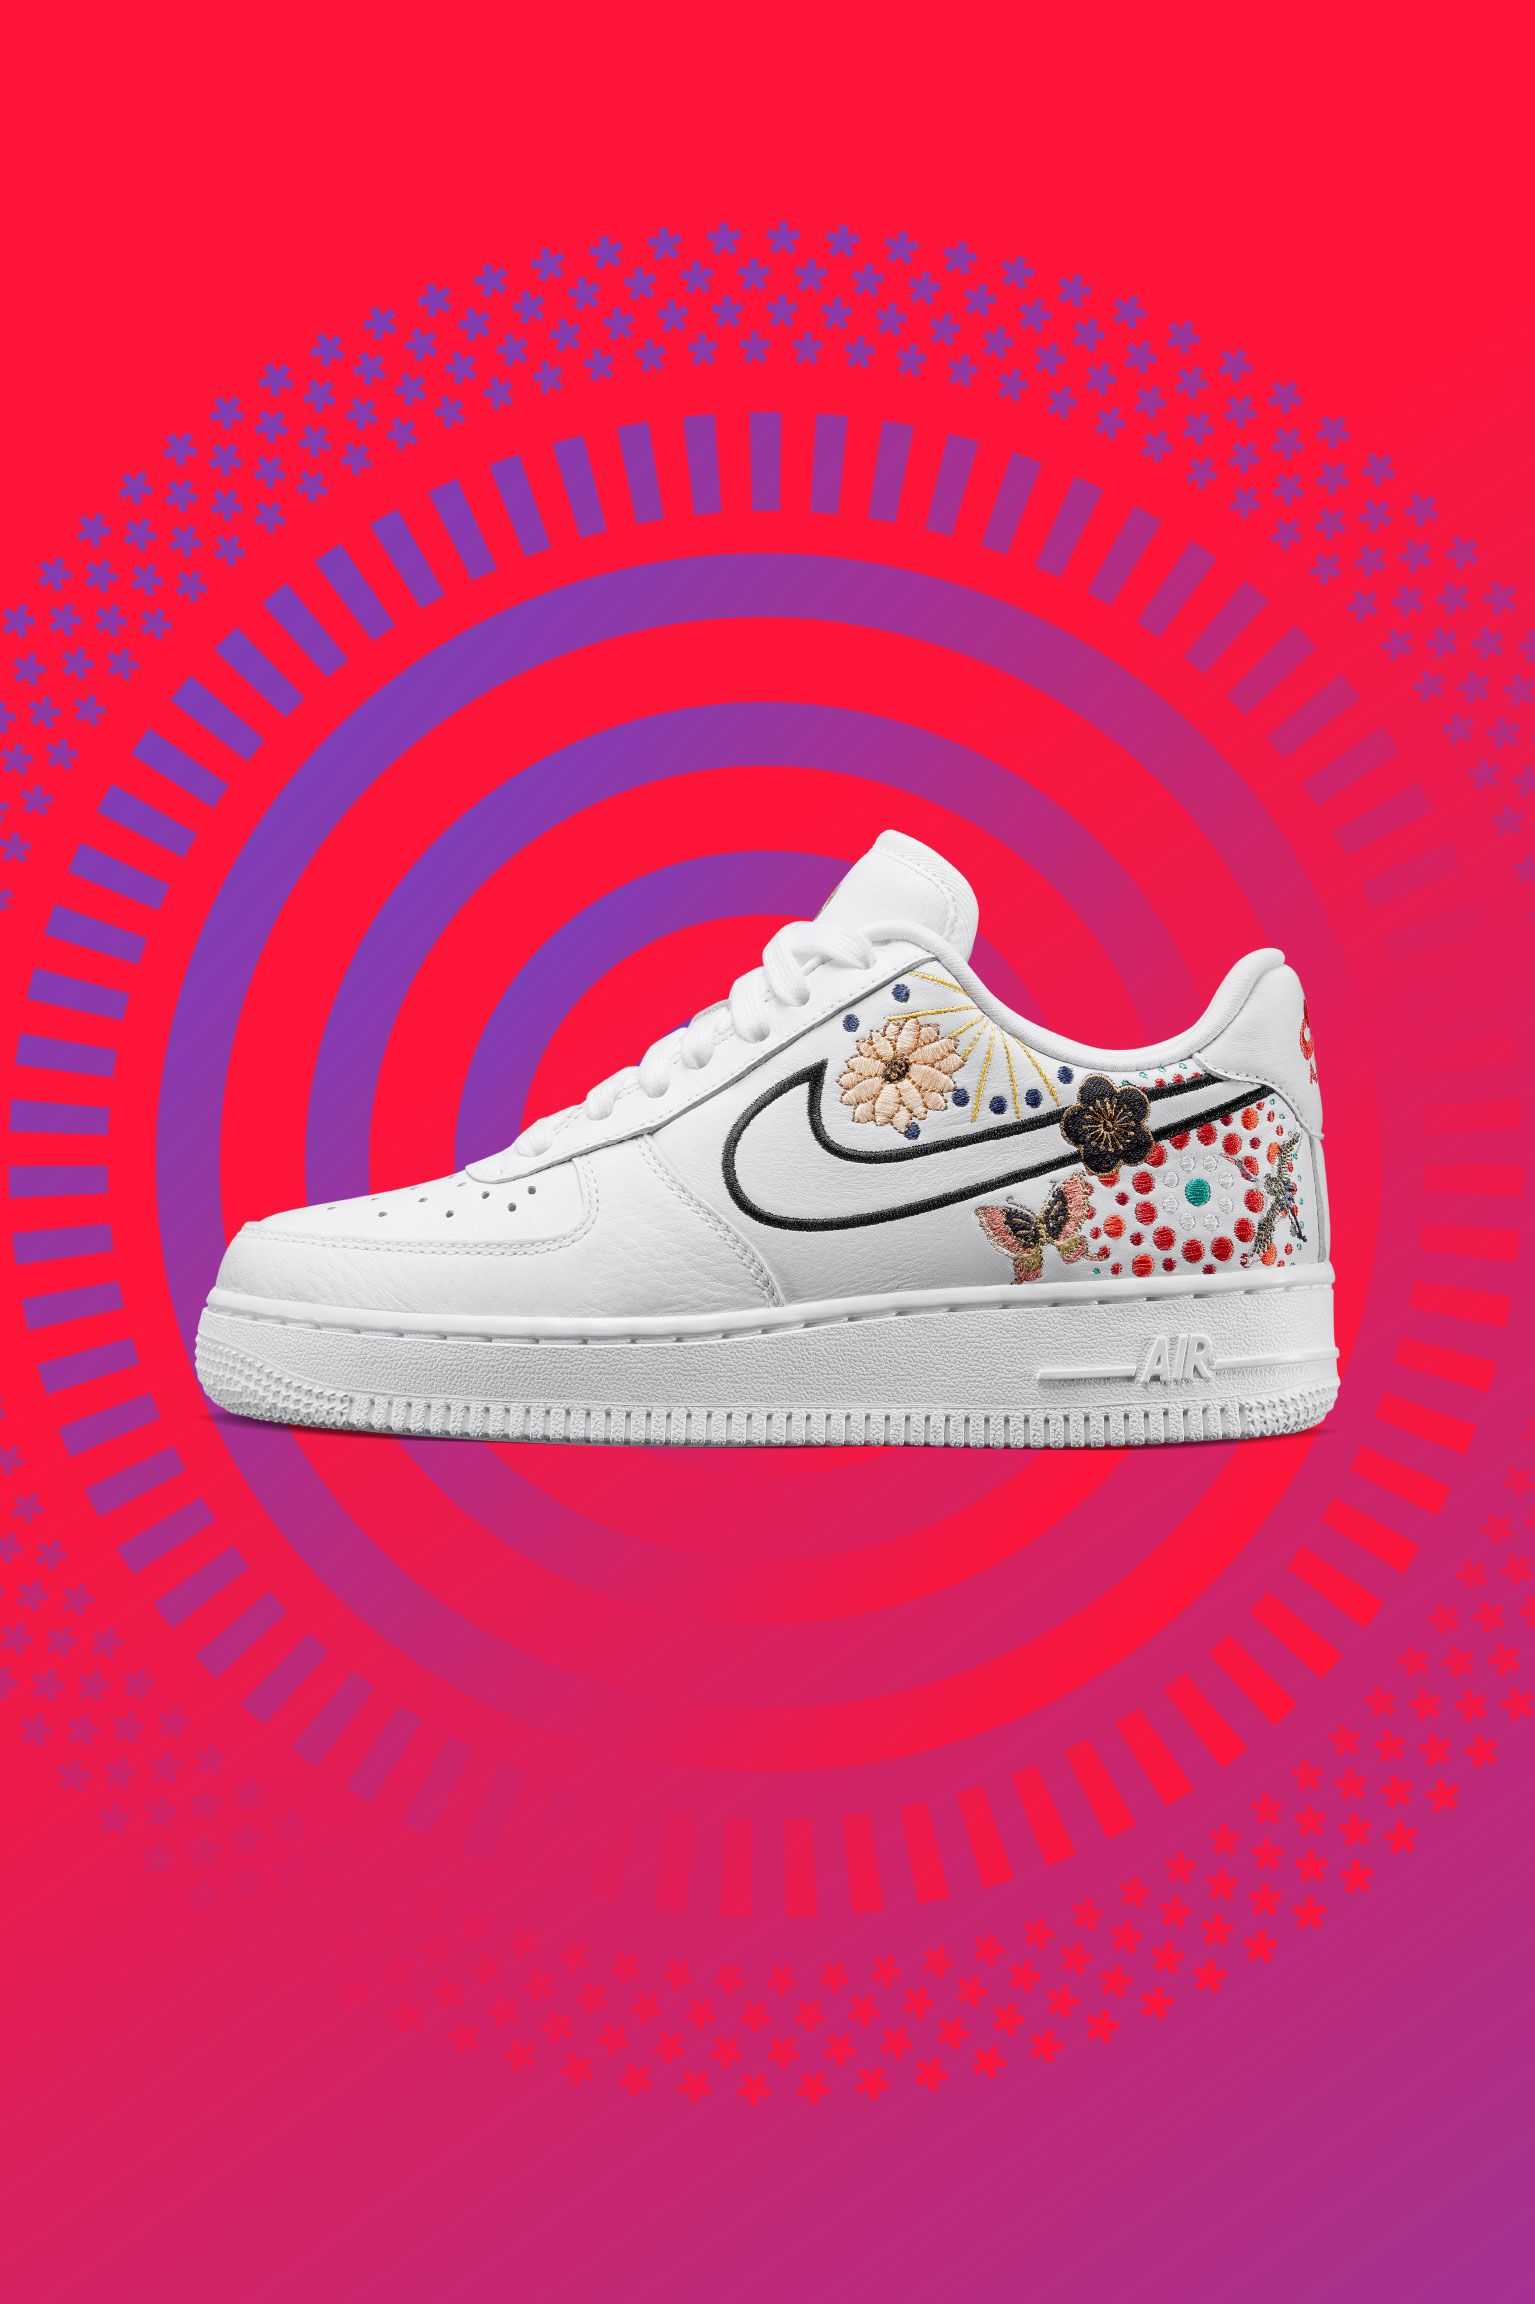 Nike Women's Air Force 1 LNY 'White & Habanero Red' Release Date